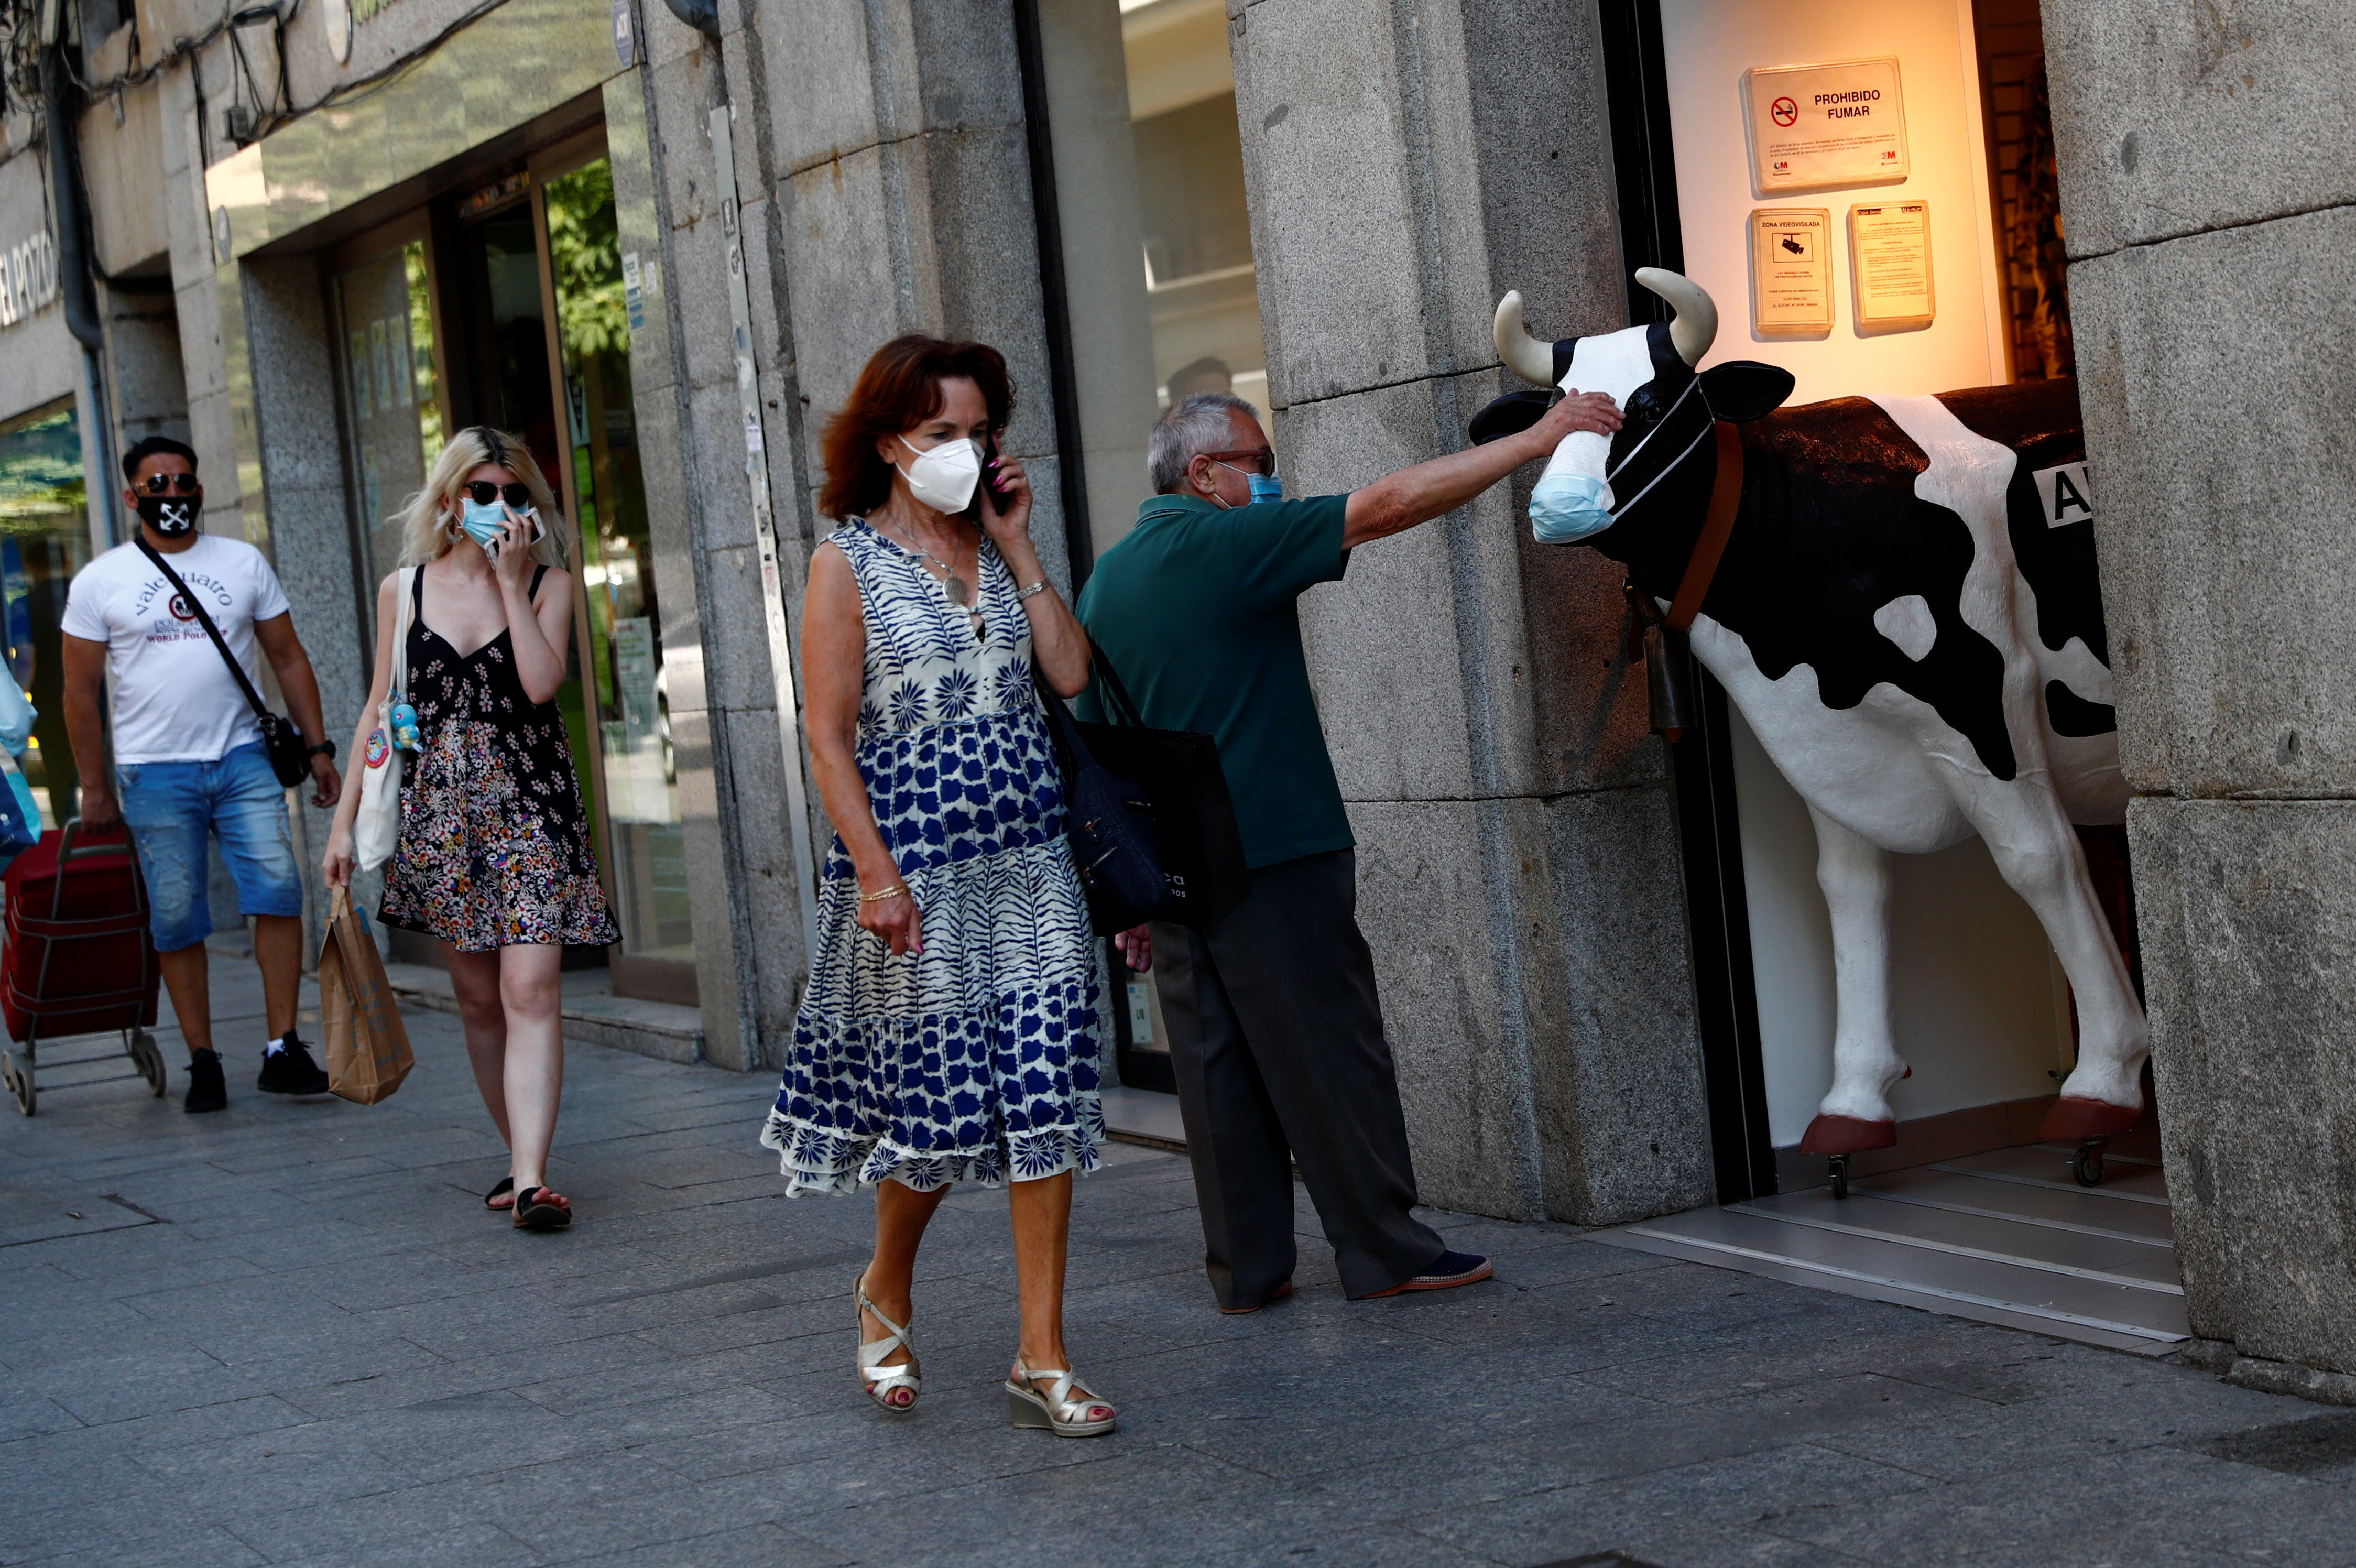 A man touches the face of a figure of a cow wearing a protective mask outside a store, amid the coronavirus disease (COVID-19) outbreak, in Madrid, Spain, June 30, 2020. REUTERS/Susana Vera - RC2NJH9PVS1N